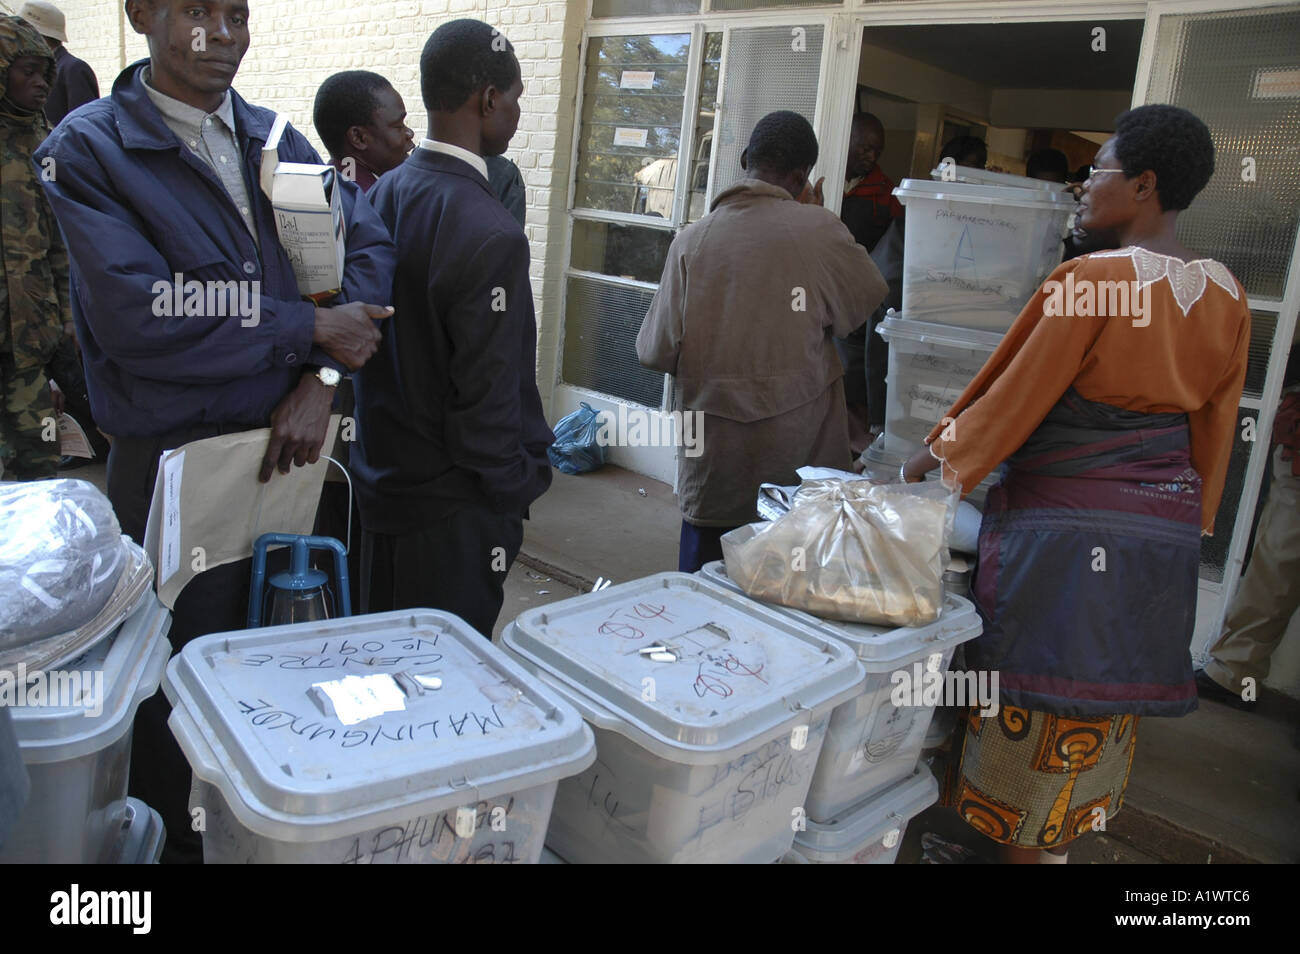 Officials deliver boxes of votes cast in Malawi election yesterday 20th of May 2004 - Stock Image